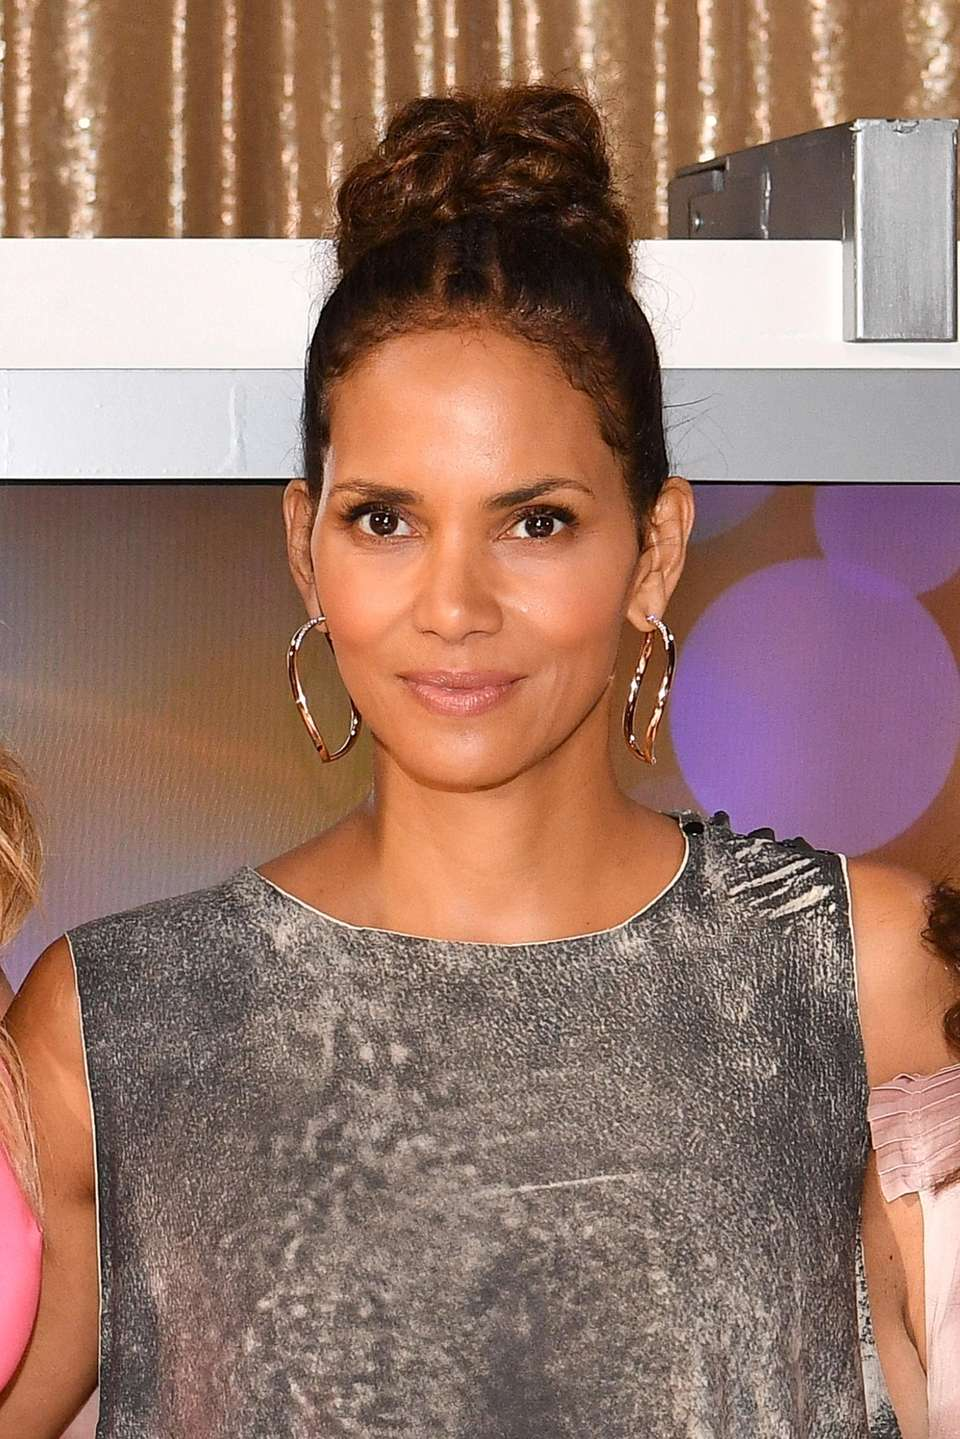 Halle Berry attends a screening of her new